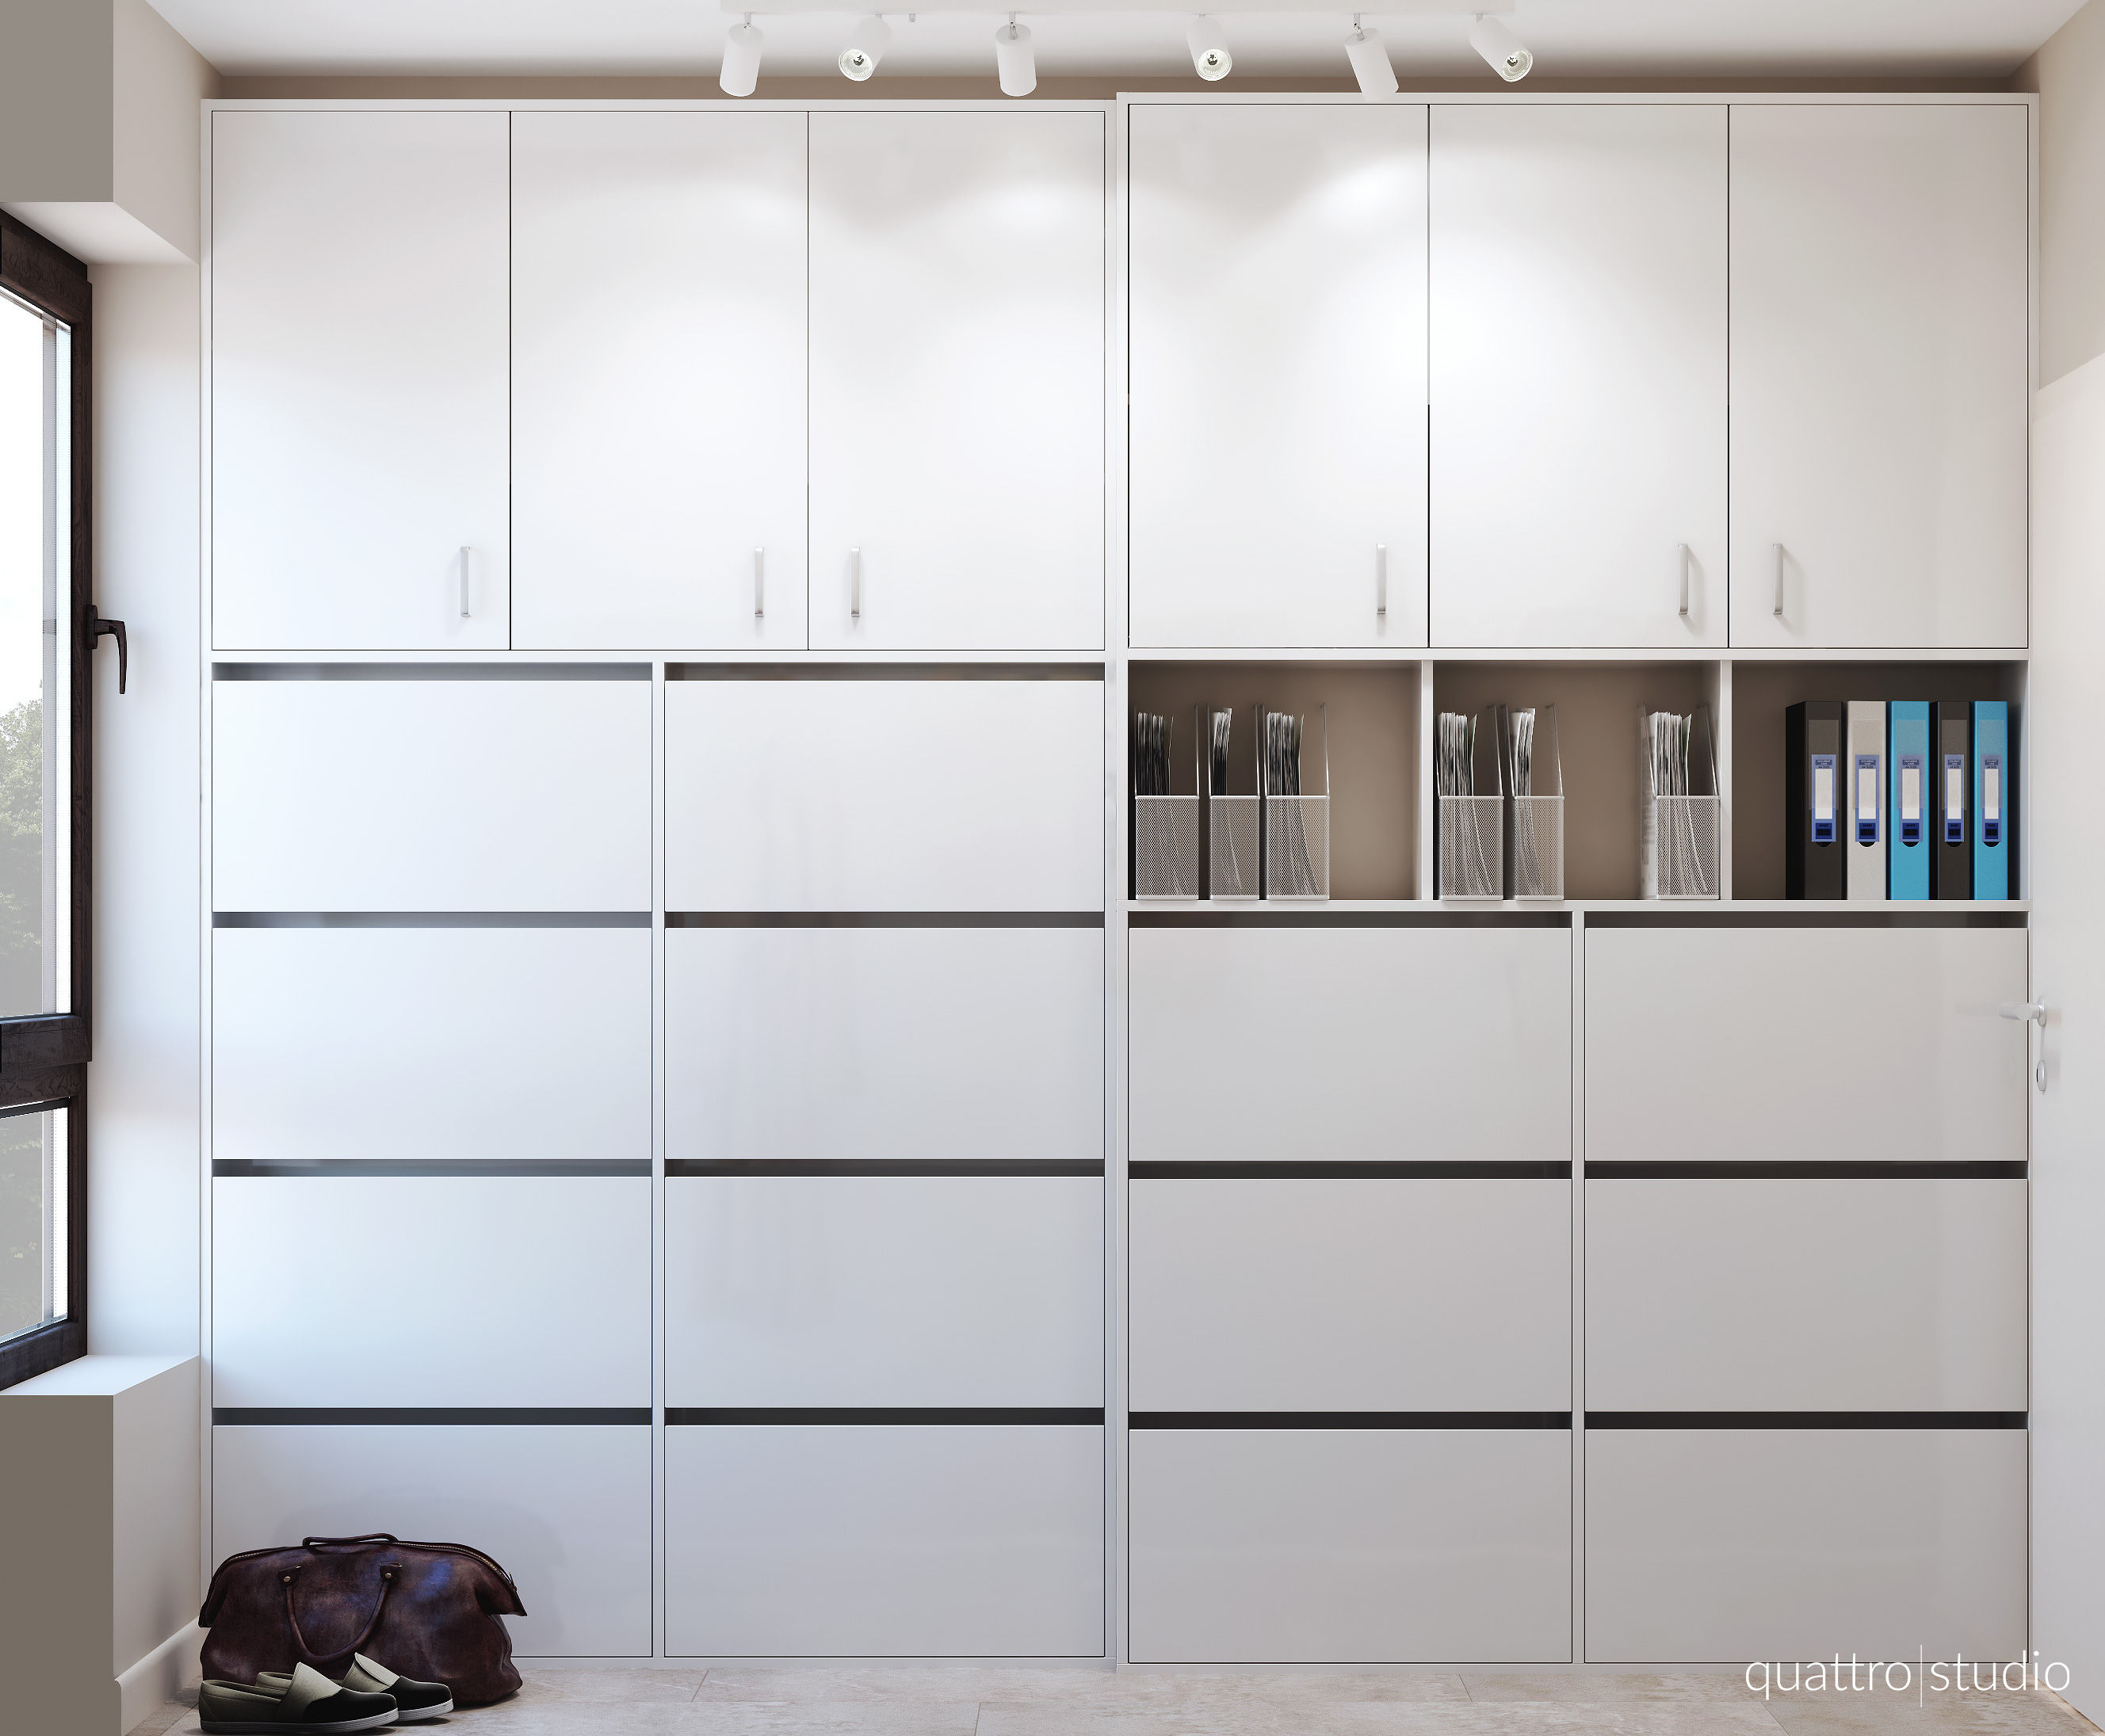 Interior design of apartment 90m2 the closet quattro for Apartment design 90m2